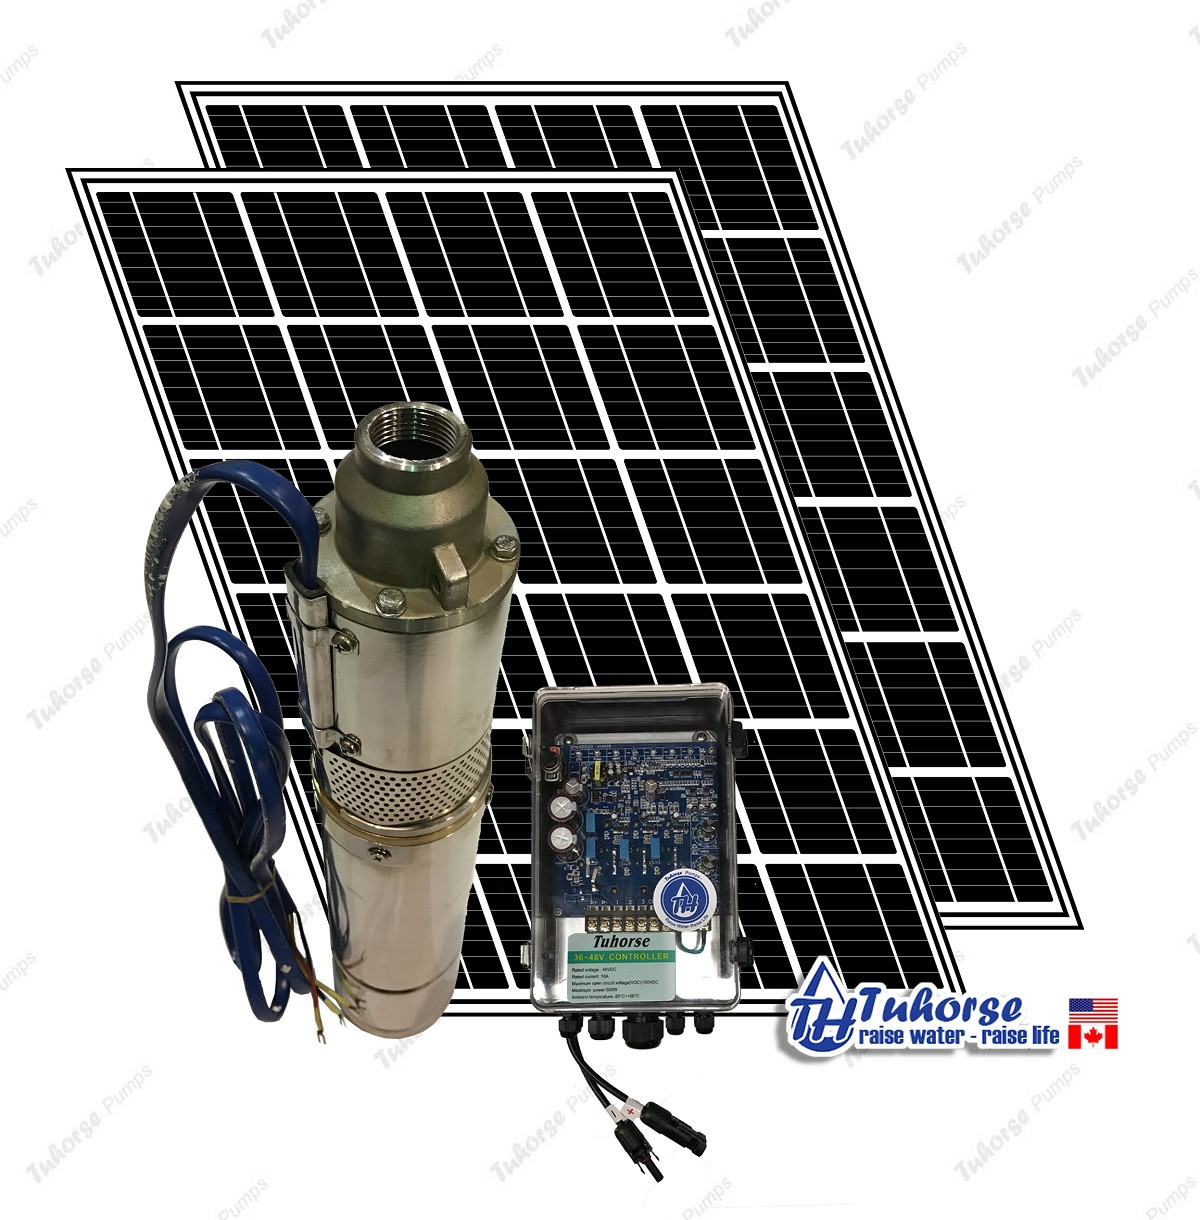 4 Solar Water Pump Kit 500w 7gpm Deep Well Tuhorse Marine Panel Wiring Submersible 390w 83 Feet Cable Complete